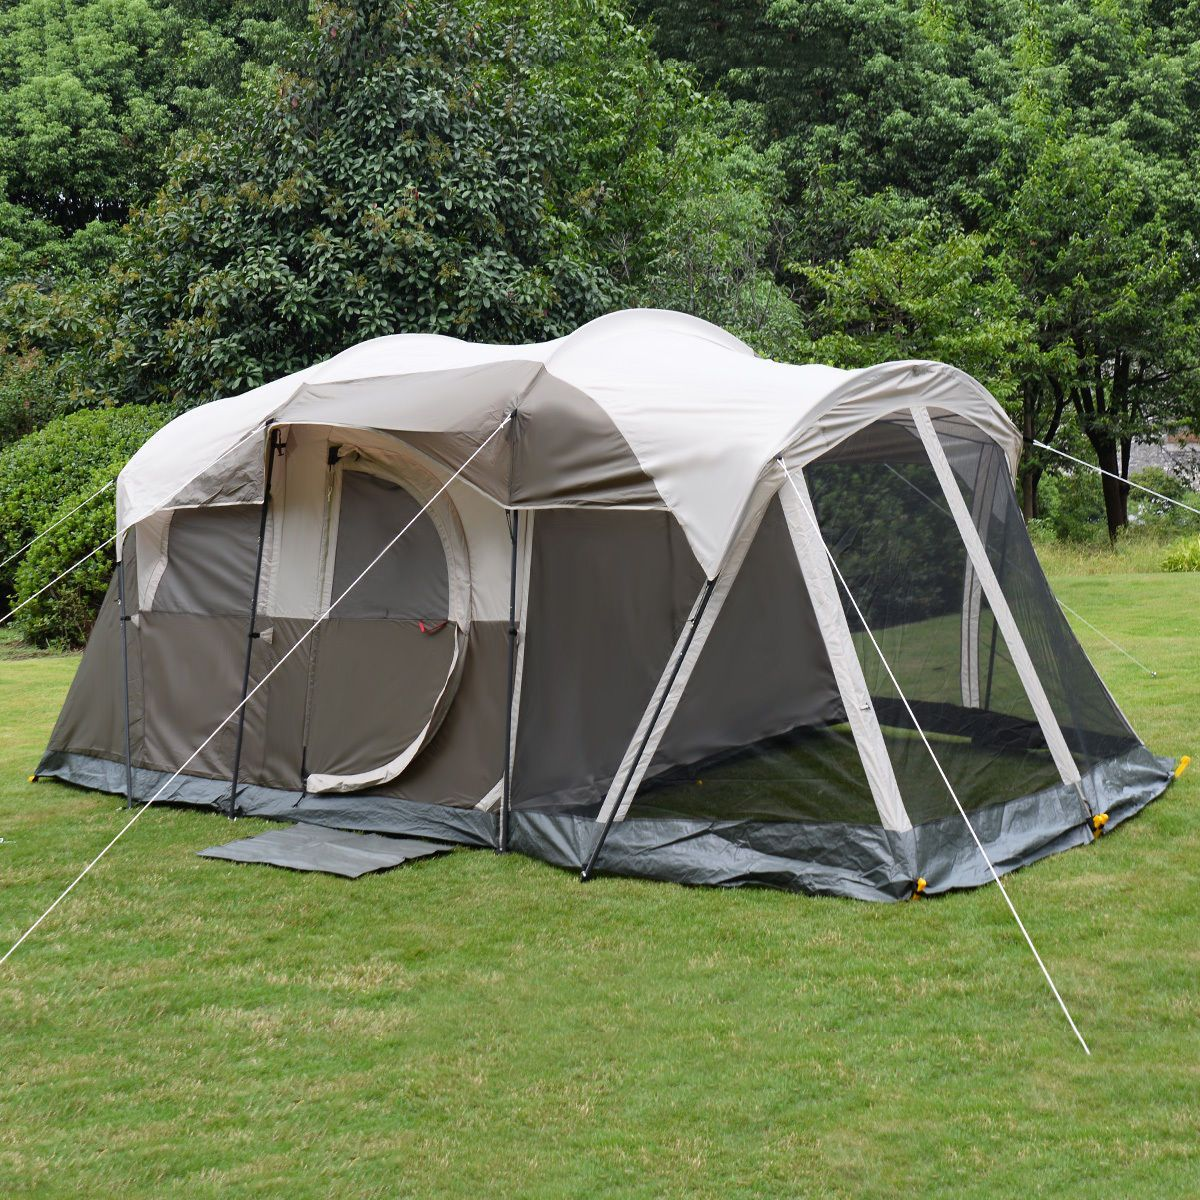 Buy Ozark Trail 3 Room Instant Cabin Tent with Screen Room at online store & 6 Person 3 Room Waterproof Camping Tent Double Layer Family ...